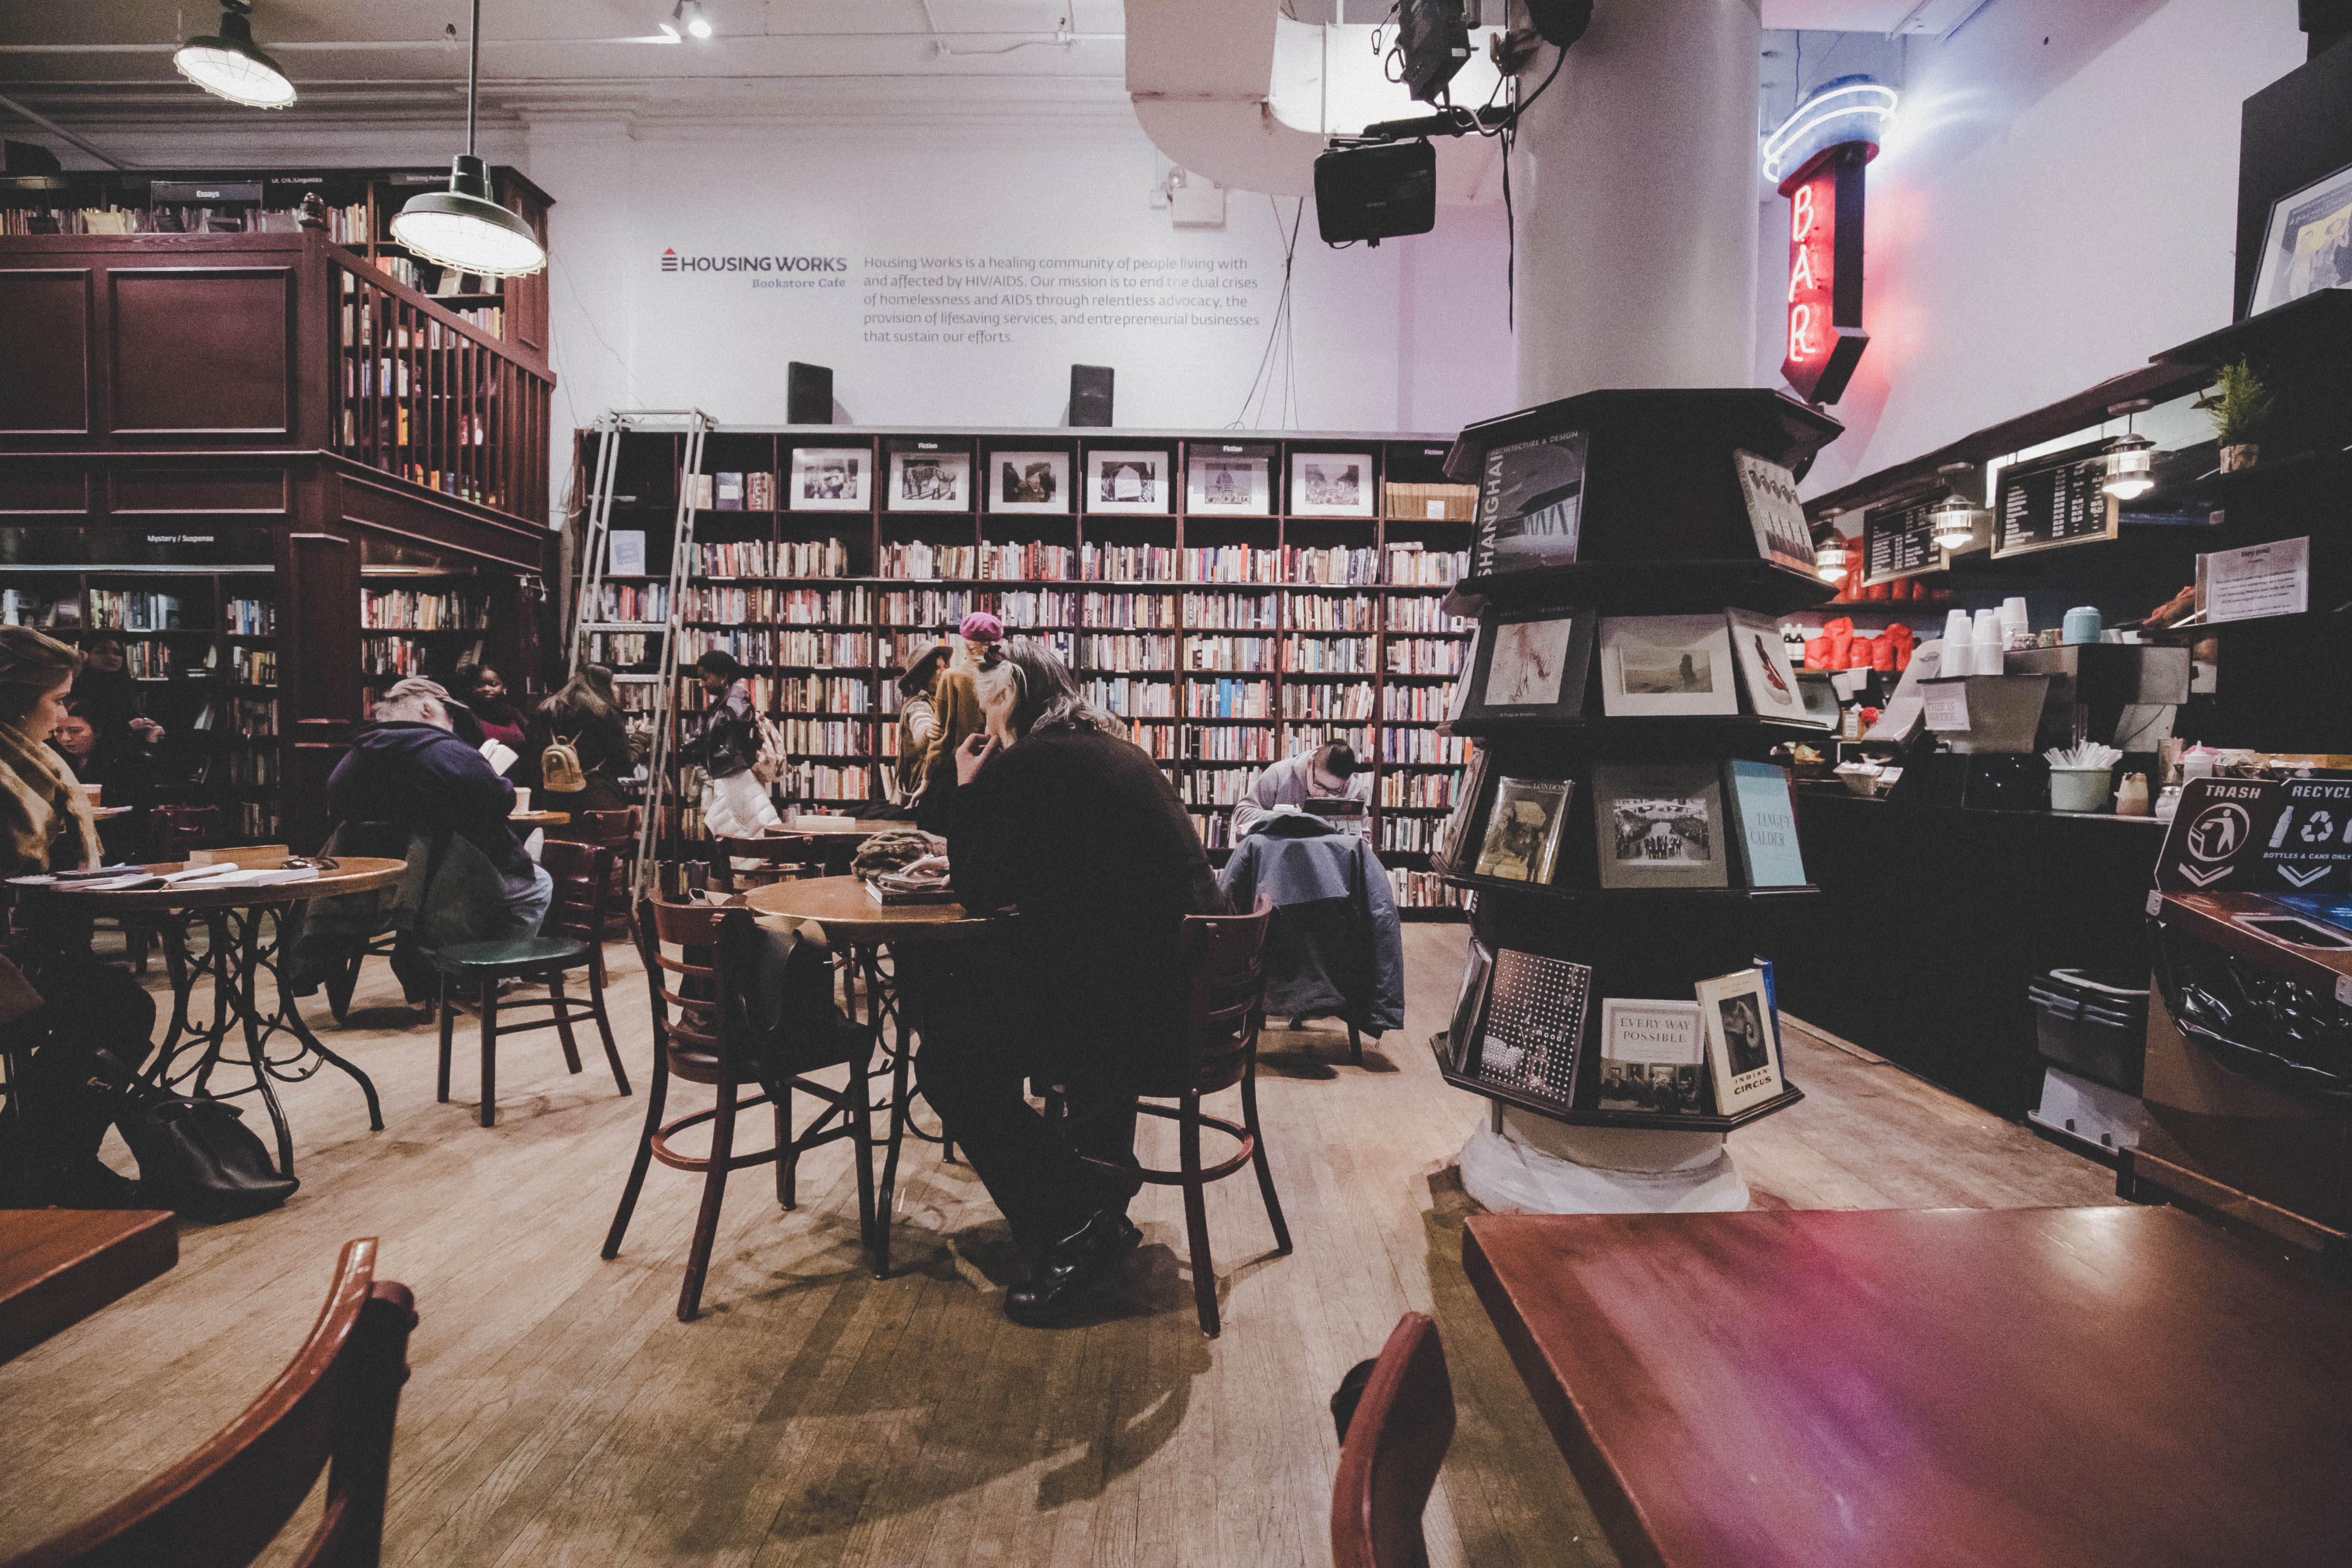 The Housing Works bookstore cafe